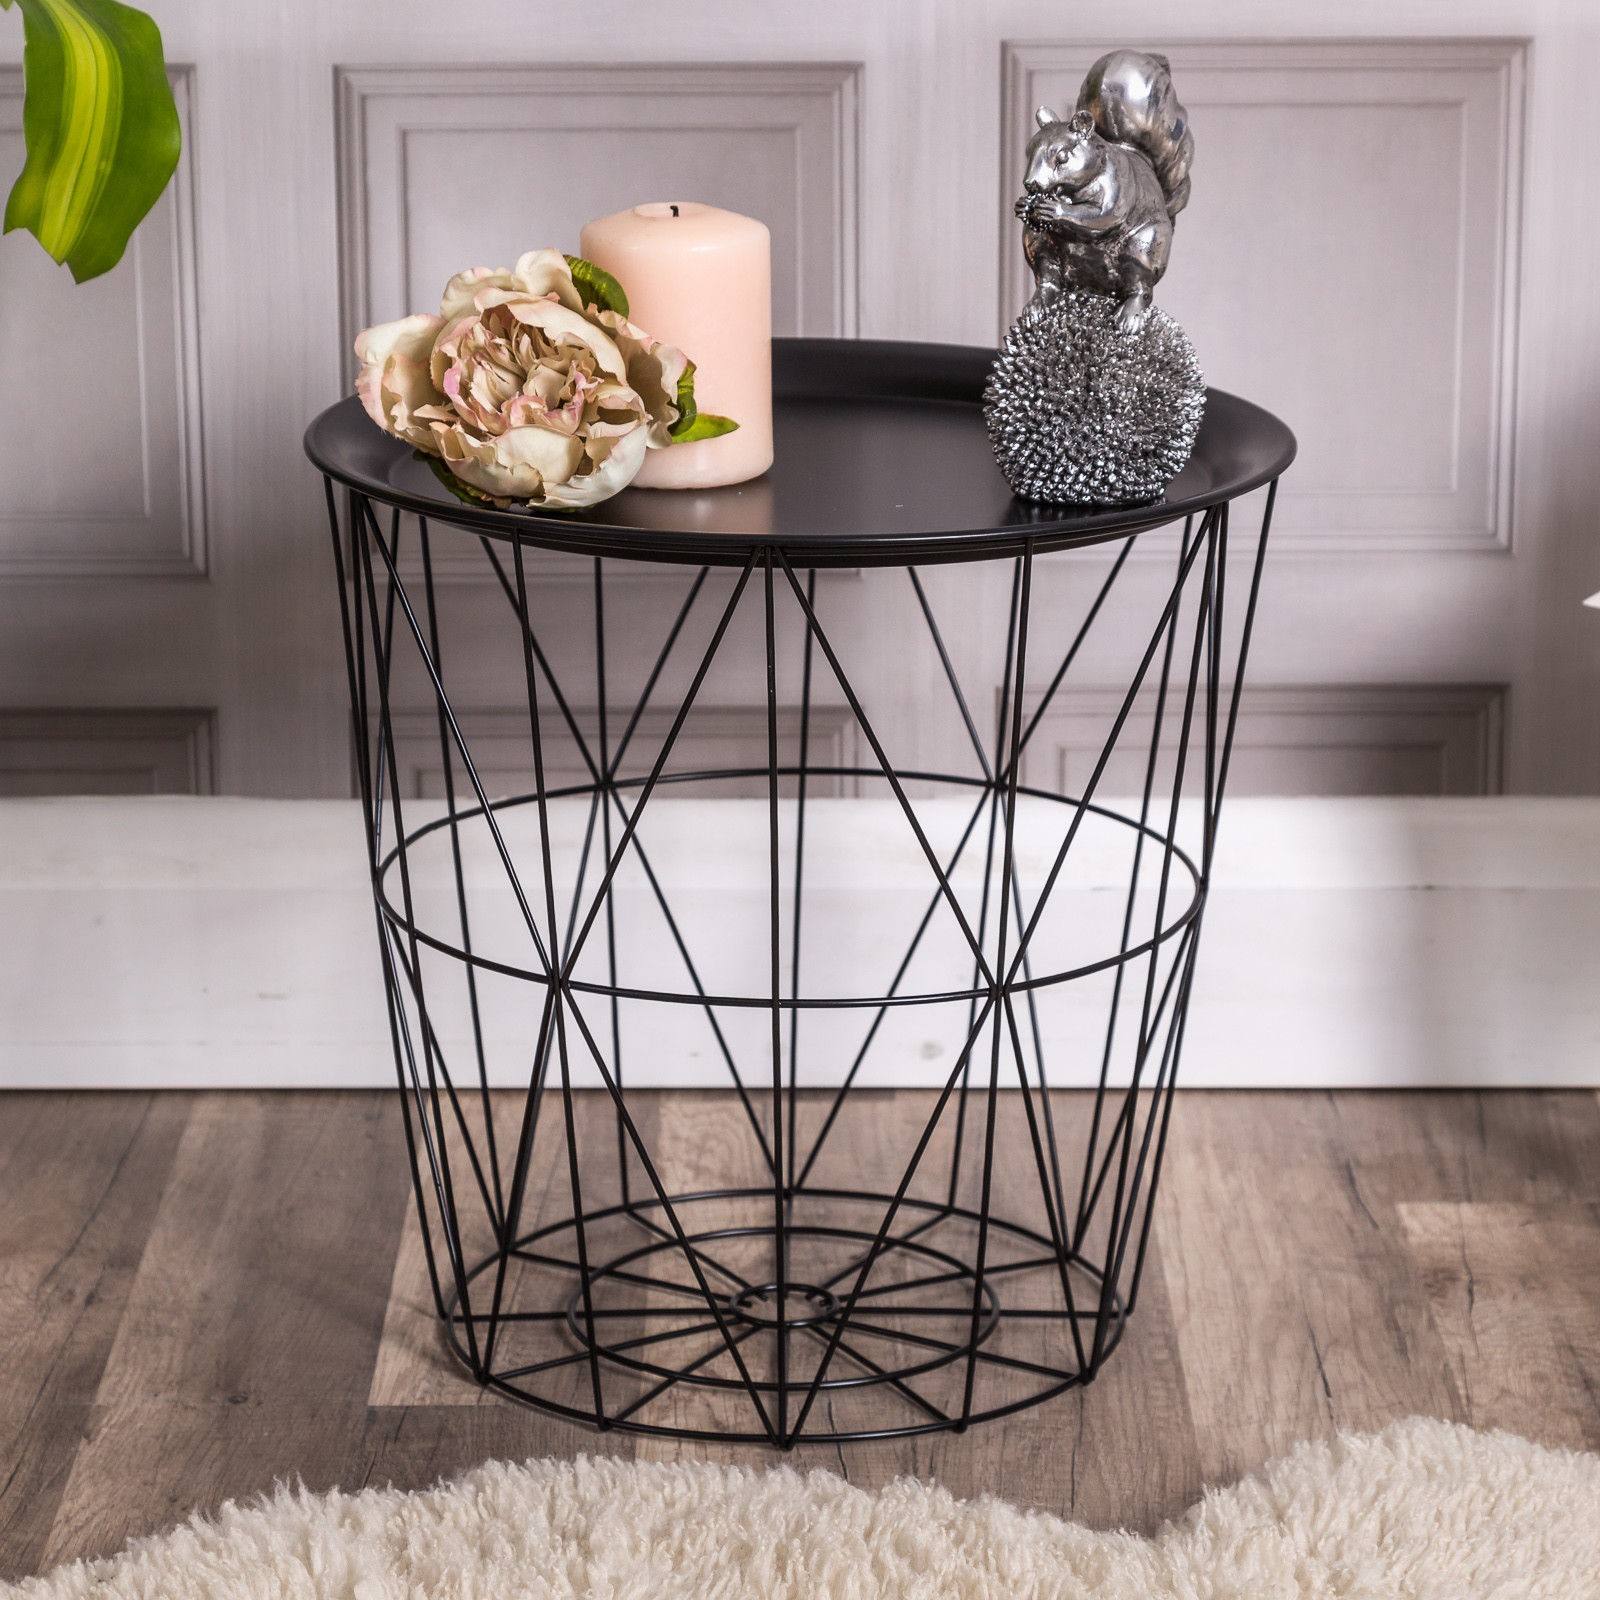 wooden pet crate end table the fantastic favorite side with wire basket save black geometric tray storage occasional lamp phone charging stand bronze and glass tables metal